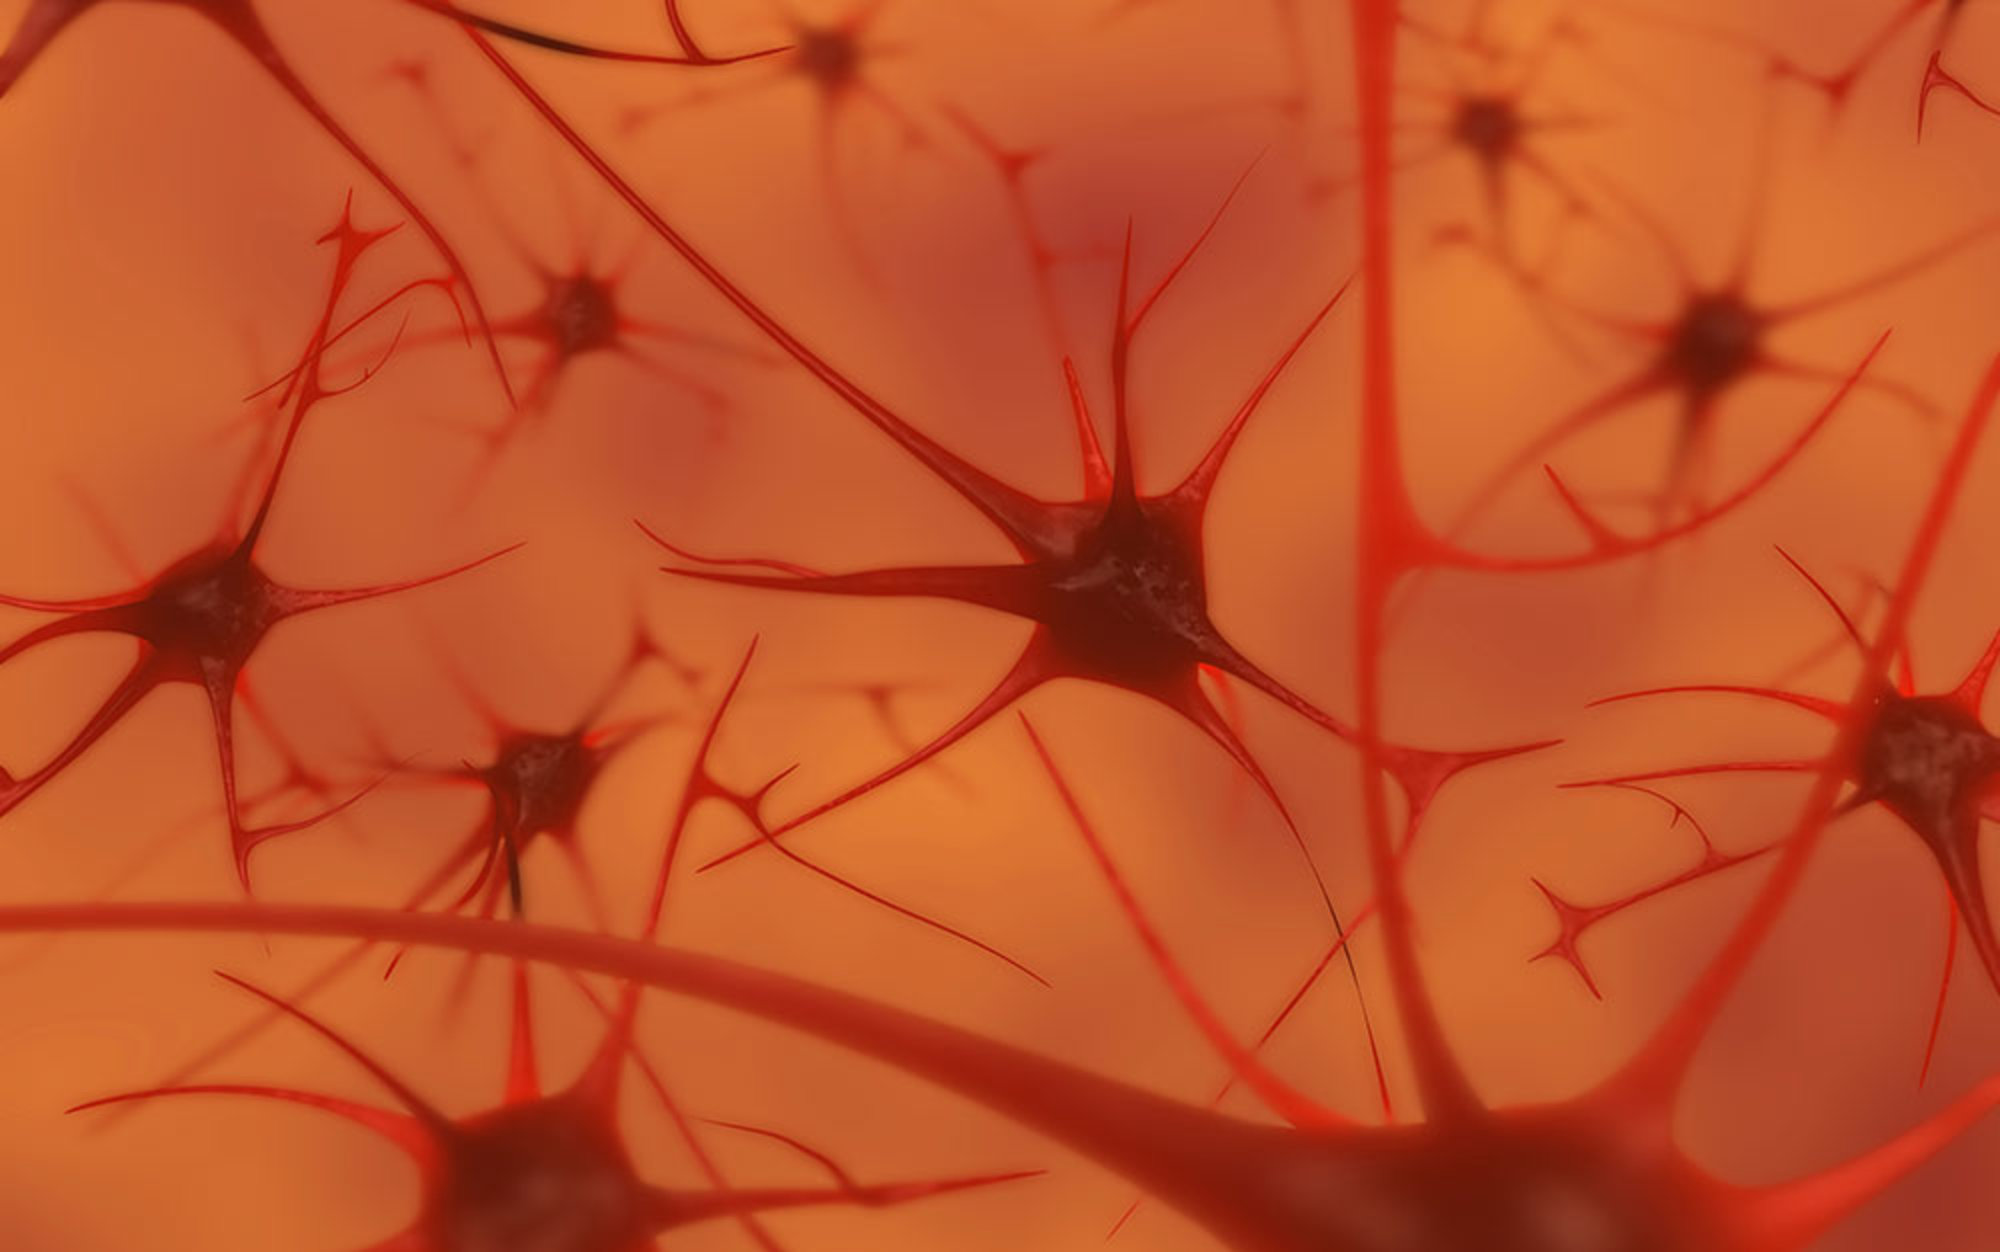 neuron soup?